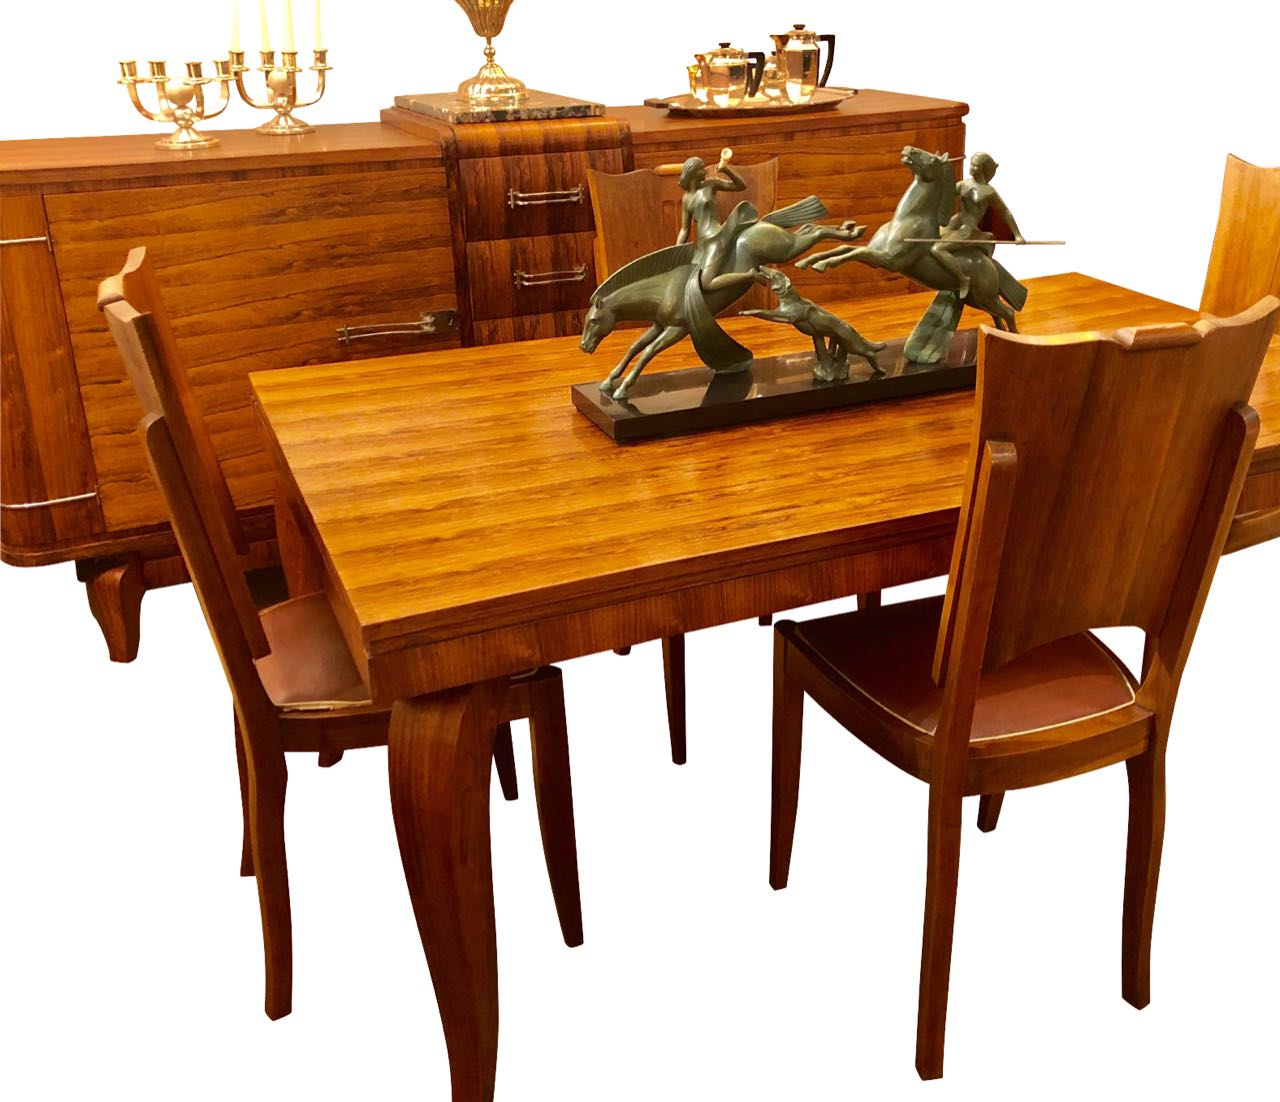 Prime Art Deco Dining Room Furniture For Sale Tables And Chairs Machost Co Dining Chair Design Ideas Machostcouk